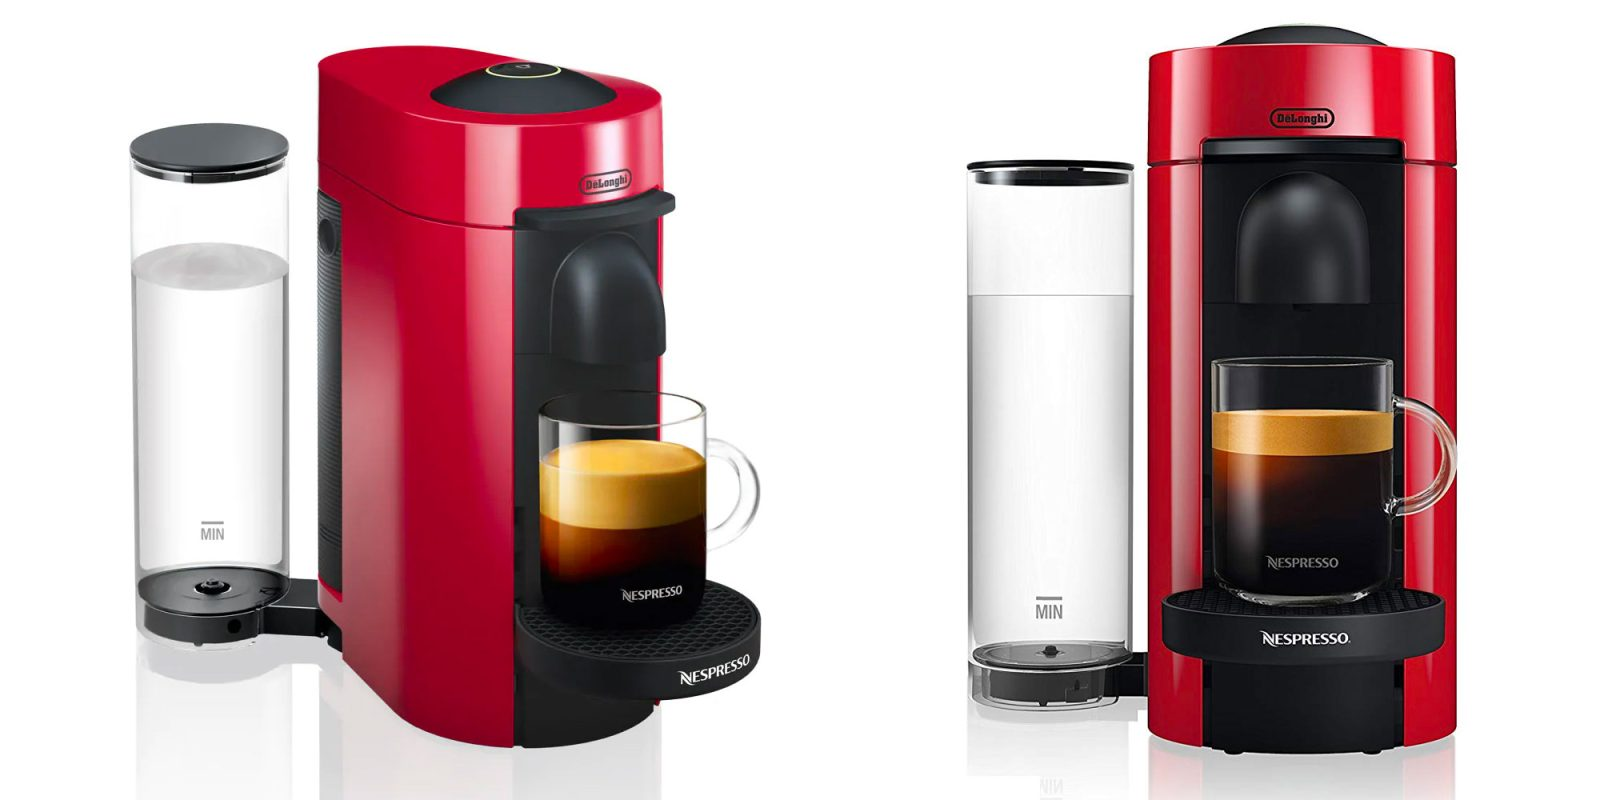 Nespresso's VertuoPlus espresso machine wakes you up at $99 or less ($30 off)